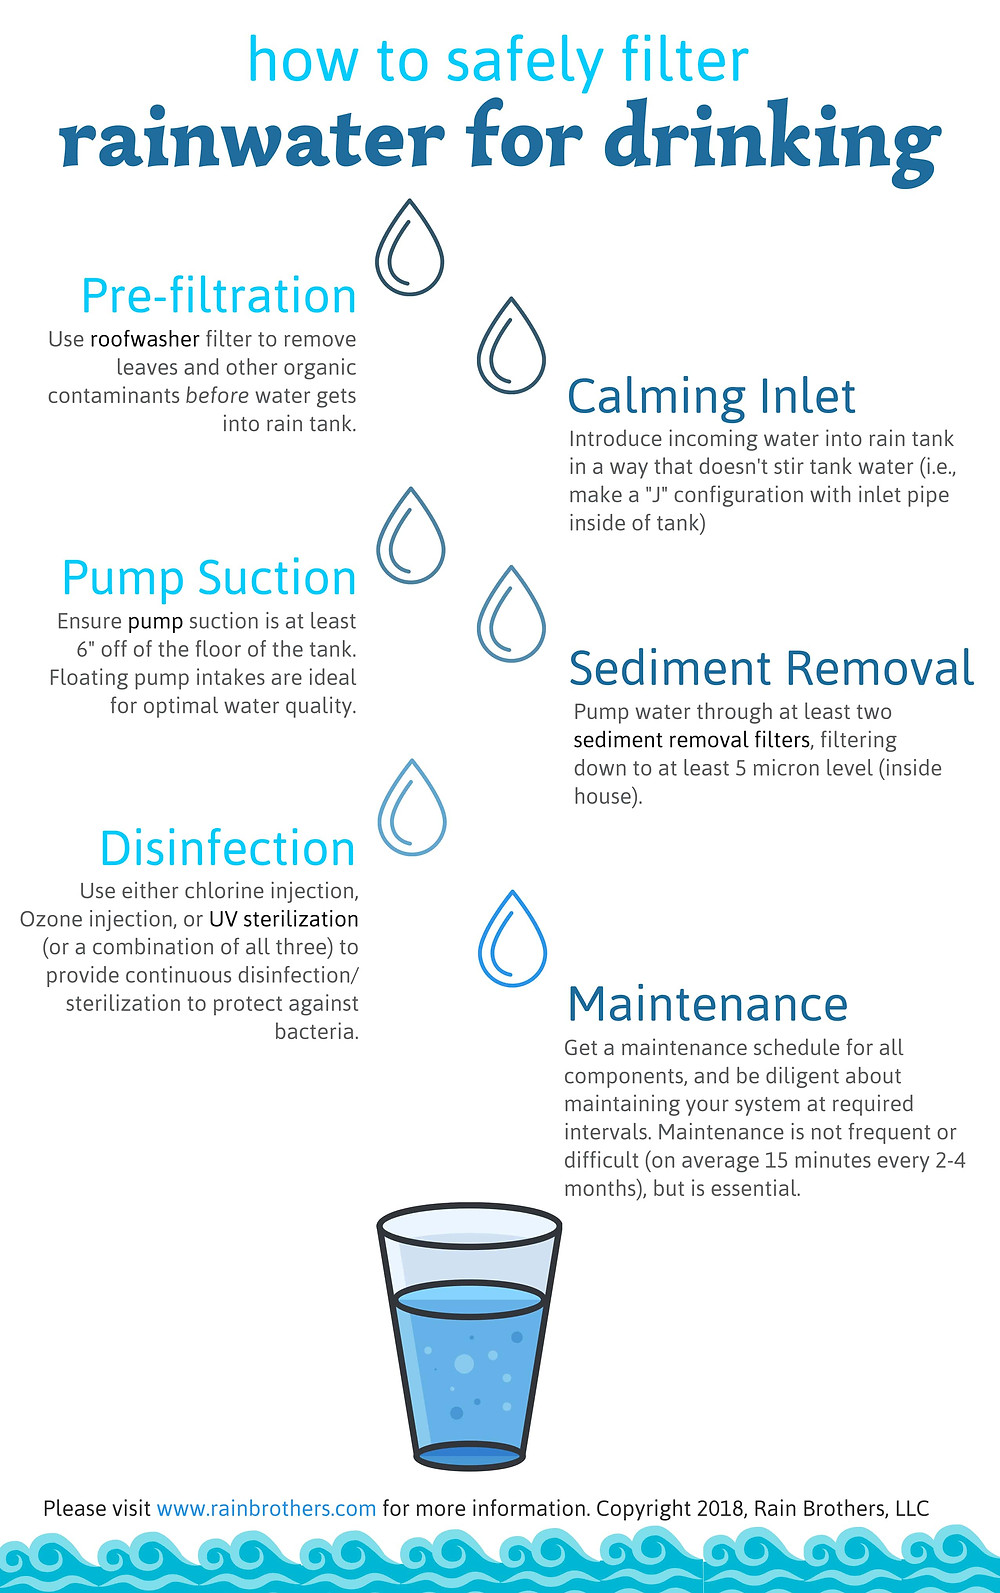 how to filter rainwater for drinking infographic